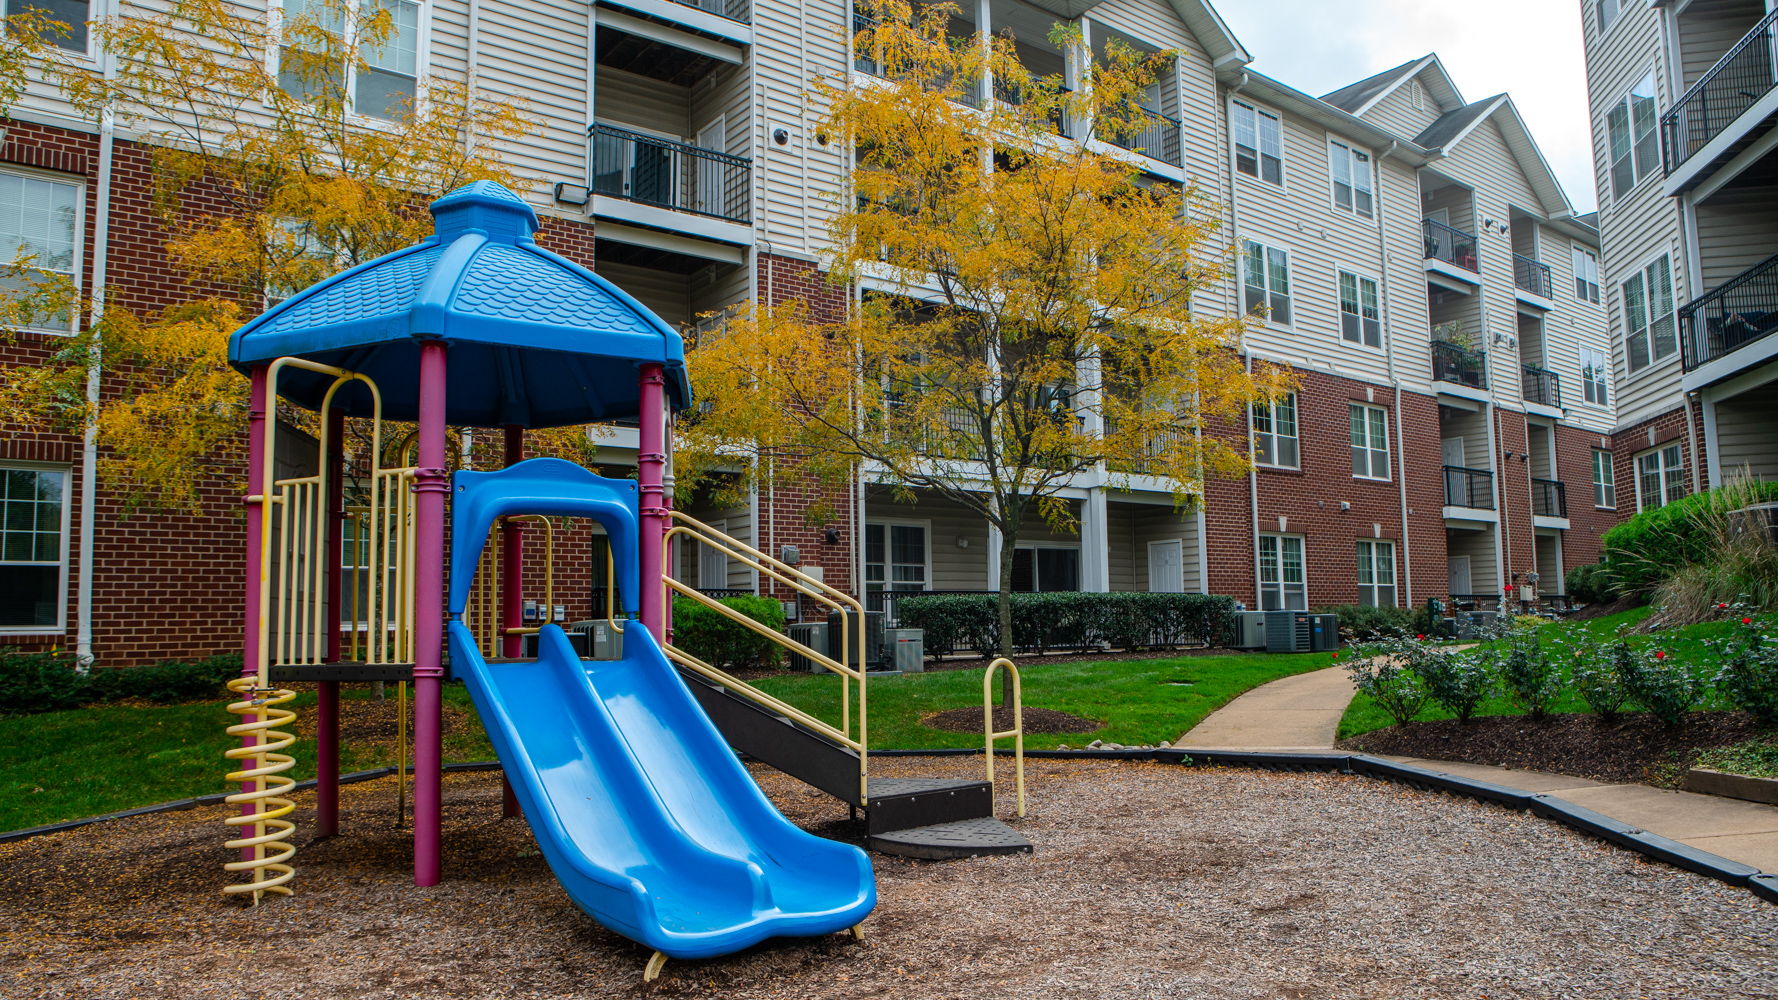 Pea Gravel vs Rubber Mulch vs Wood Chips: Which Is Best For Playground Surfaces